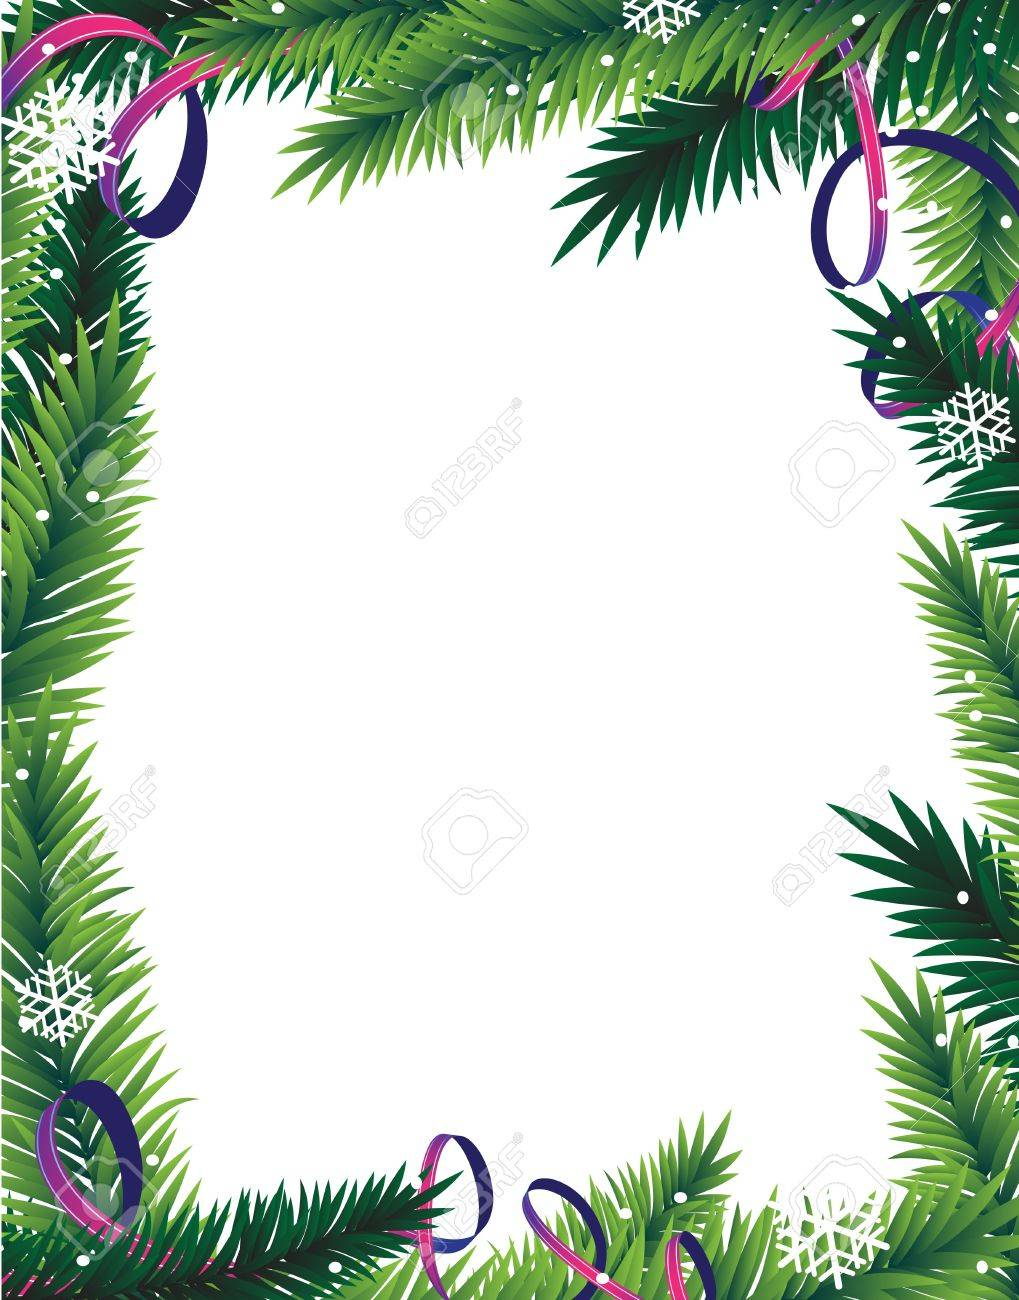 Fir tree branches and tinsel on a white background Abstract Christmas frame - 16480459